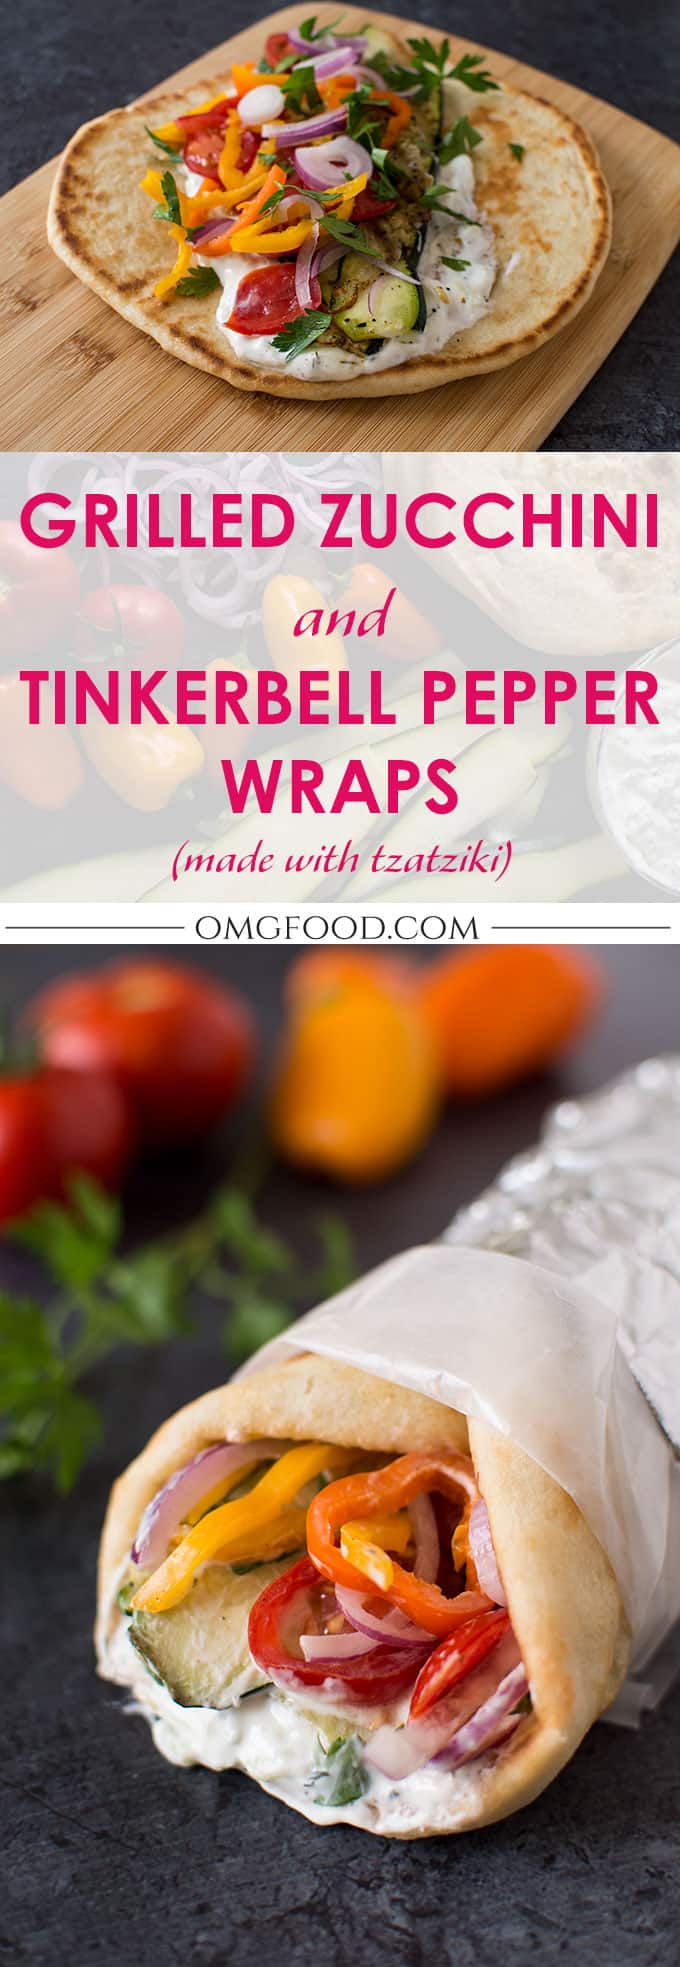 Grilled Zucchini and Tinkerbell Pepper Wraps with Tzatziki | omgfood.com